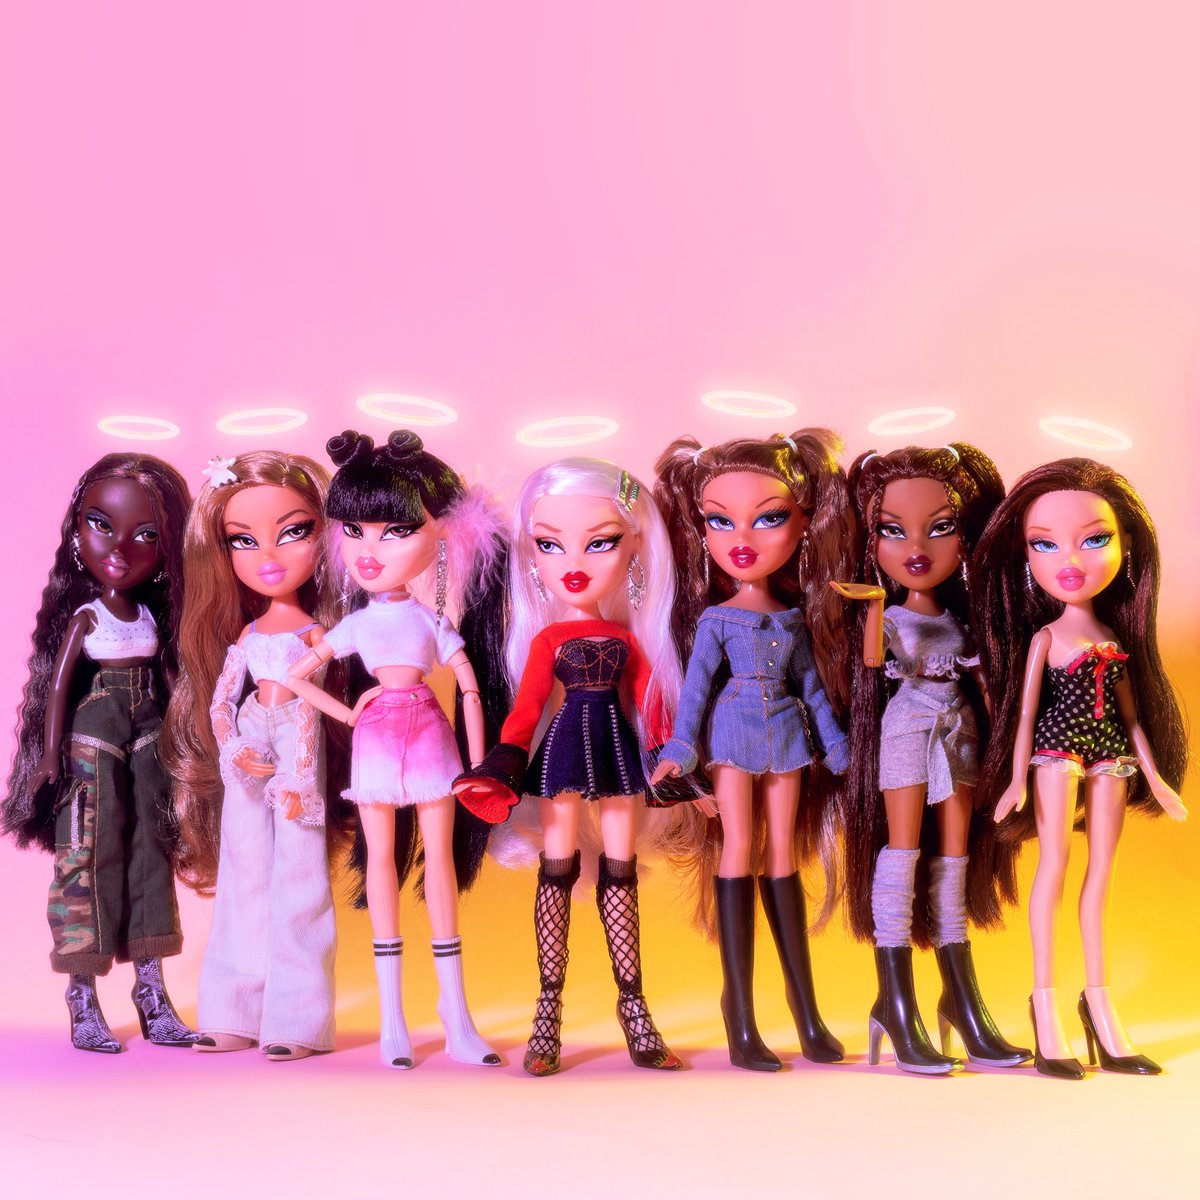 Bratz On Twitter Happy Internationalwomensday From This Fierce